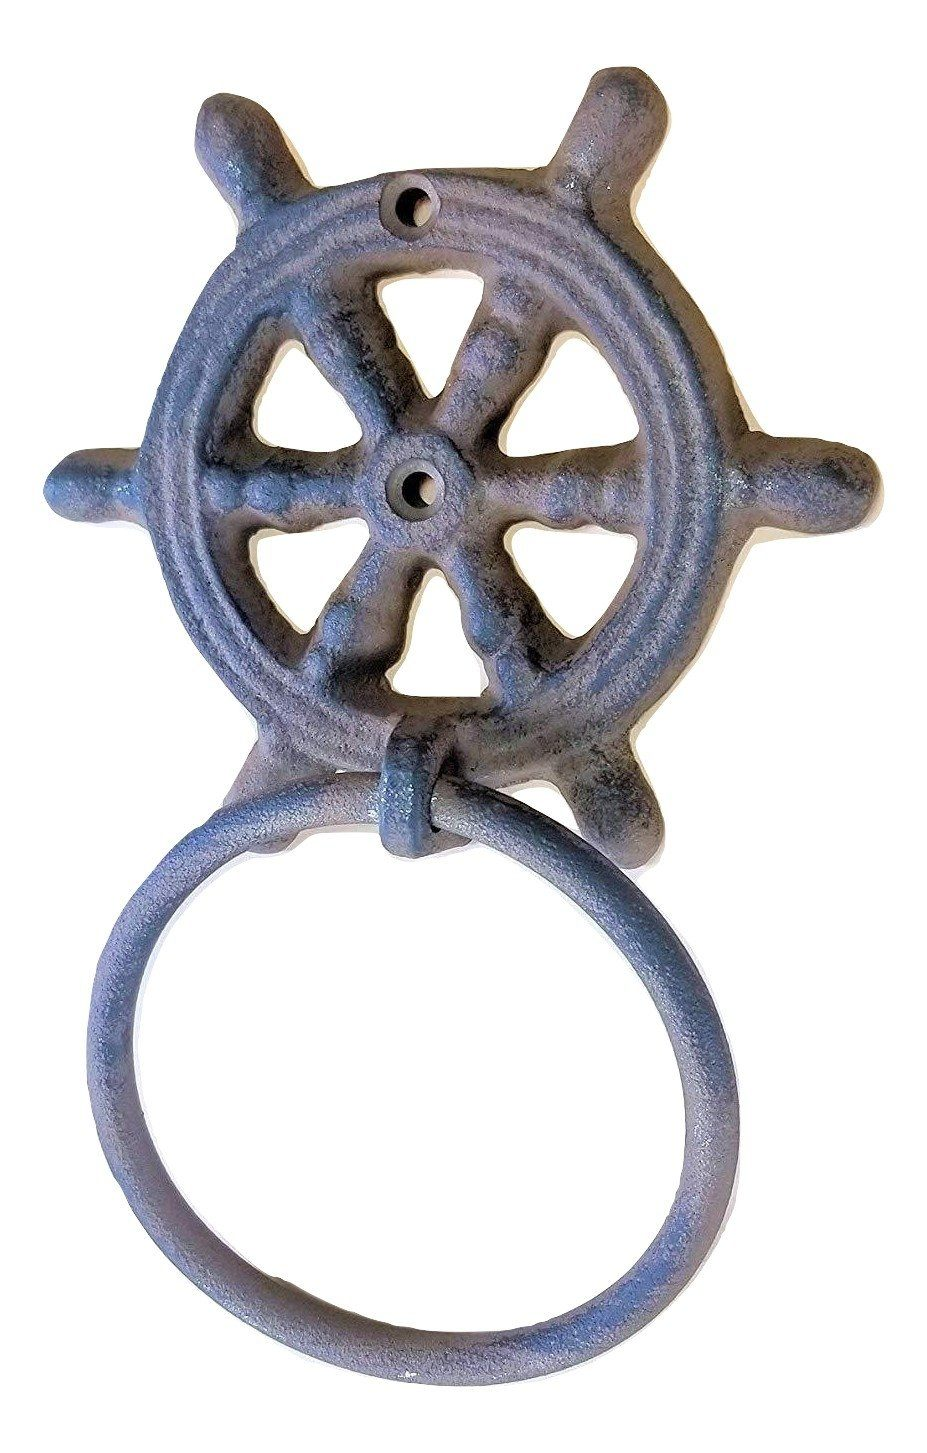 "Cast Iron Ships Wheel Helm Towel Ring 4"" with hardware"